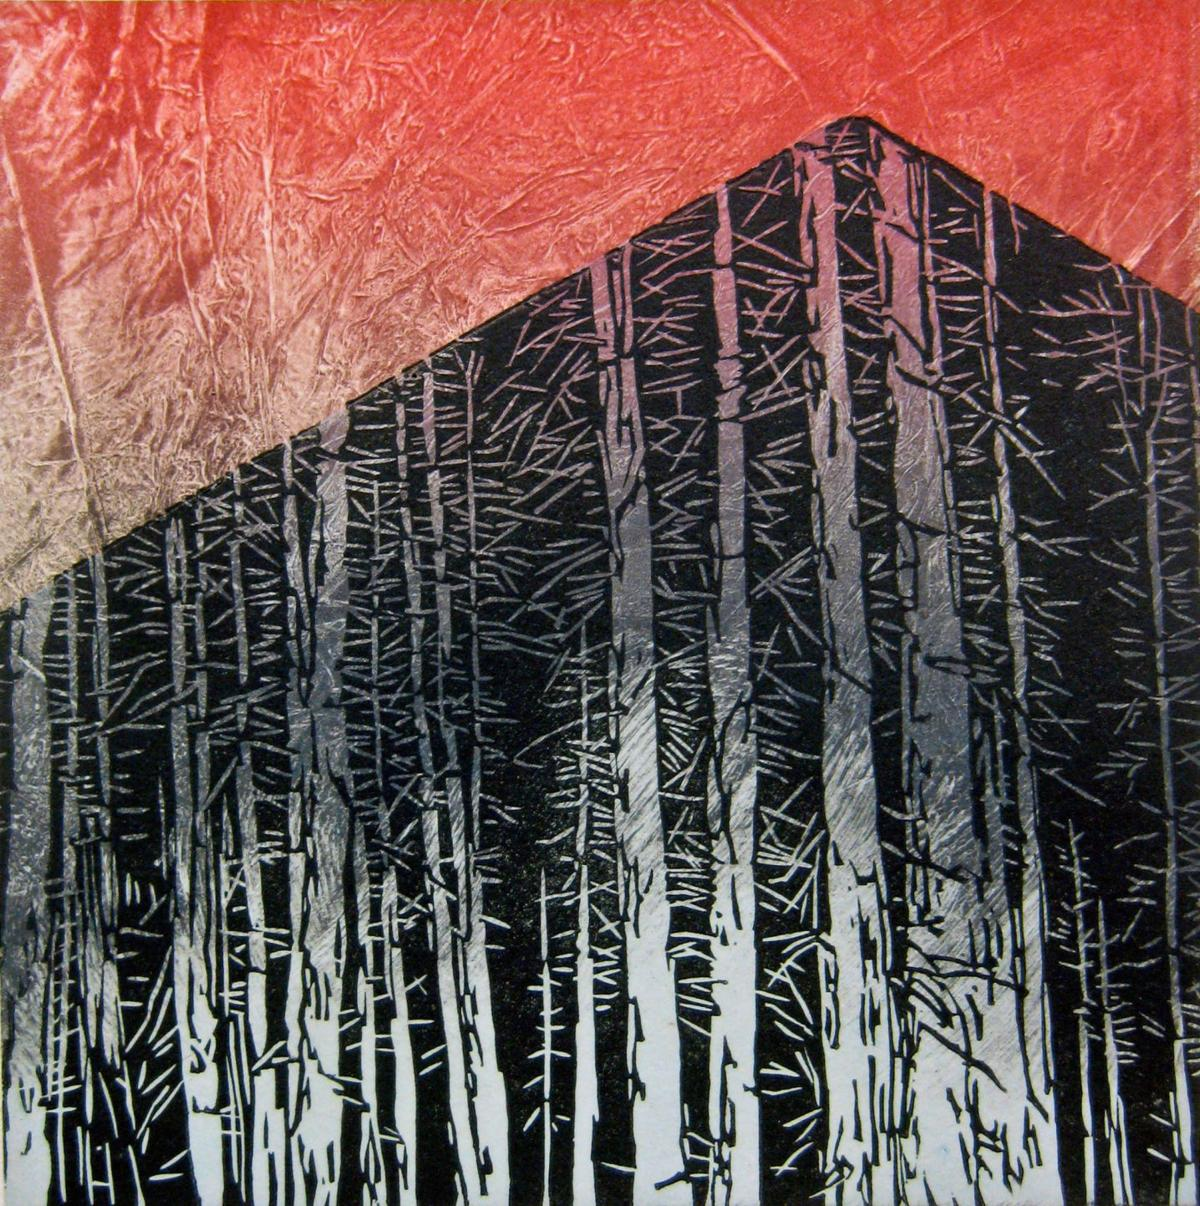 Exhibit of prints investigates the effects of time on landscapes